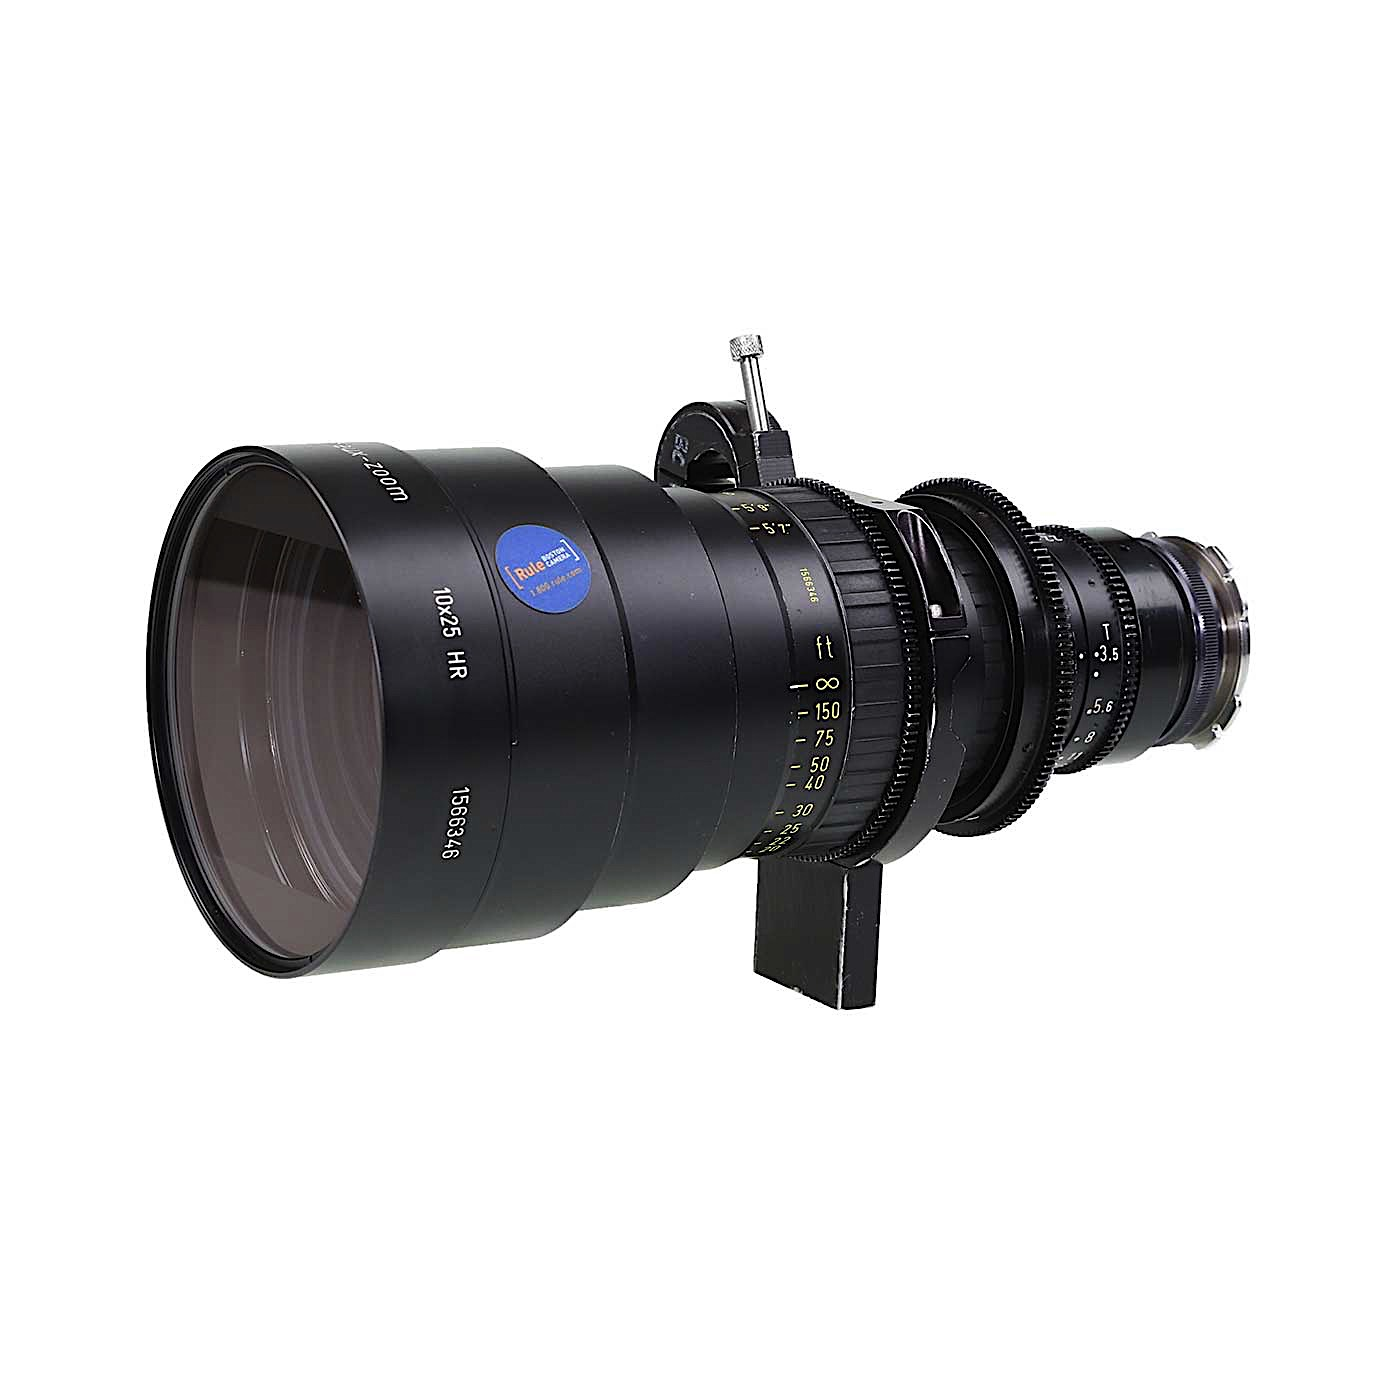 Angenieux 25-250mm HR Zoom Lens